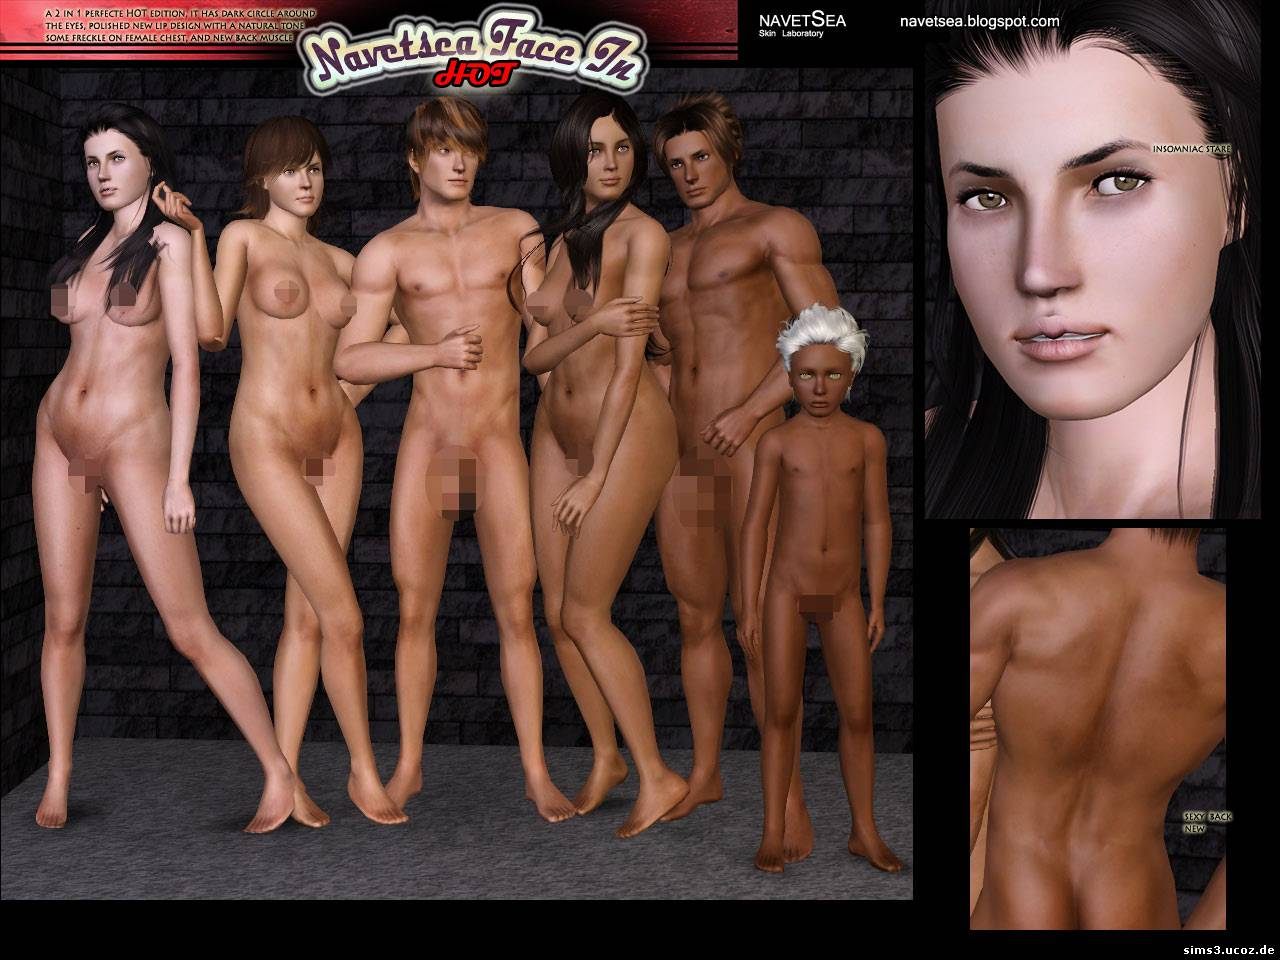 The sims 2 naked erotica films